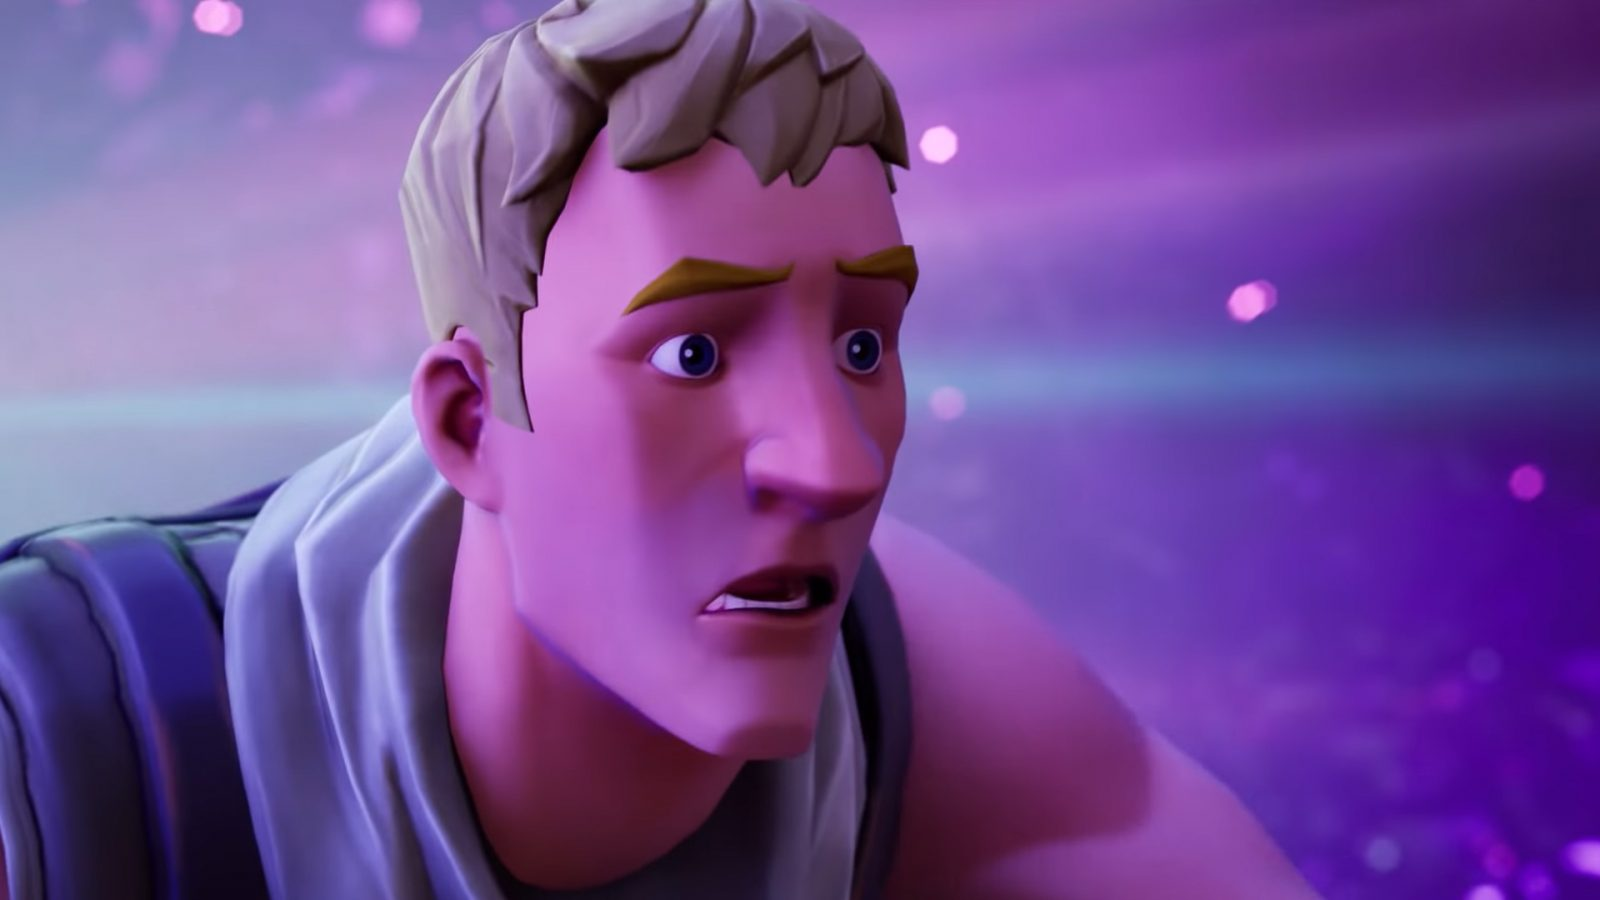 Fortnite updates keep coming, but Epic won't release patch notes